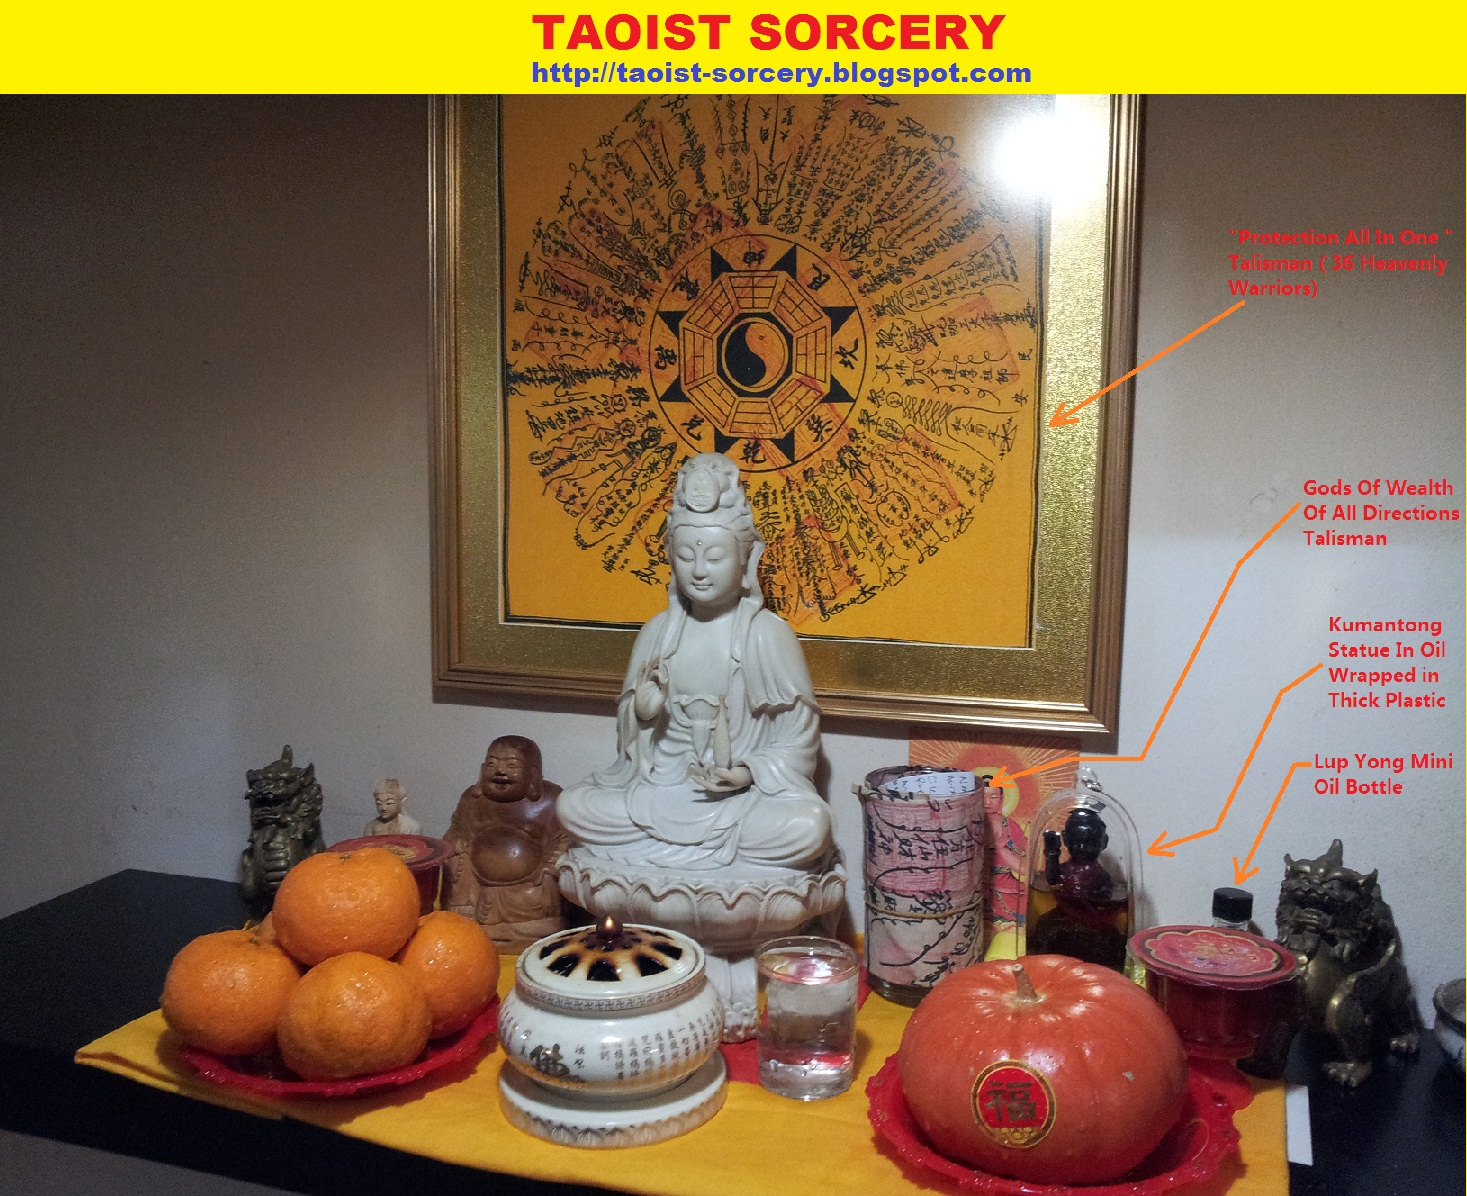 TAOIST SORCERY: Activate Your Taoist Altar with